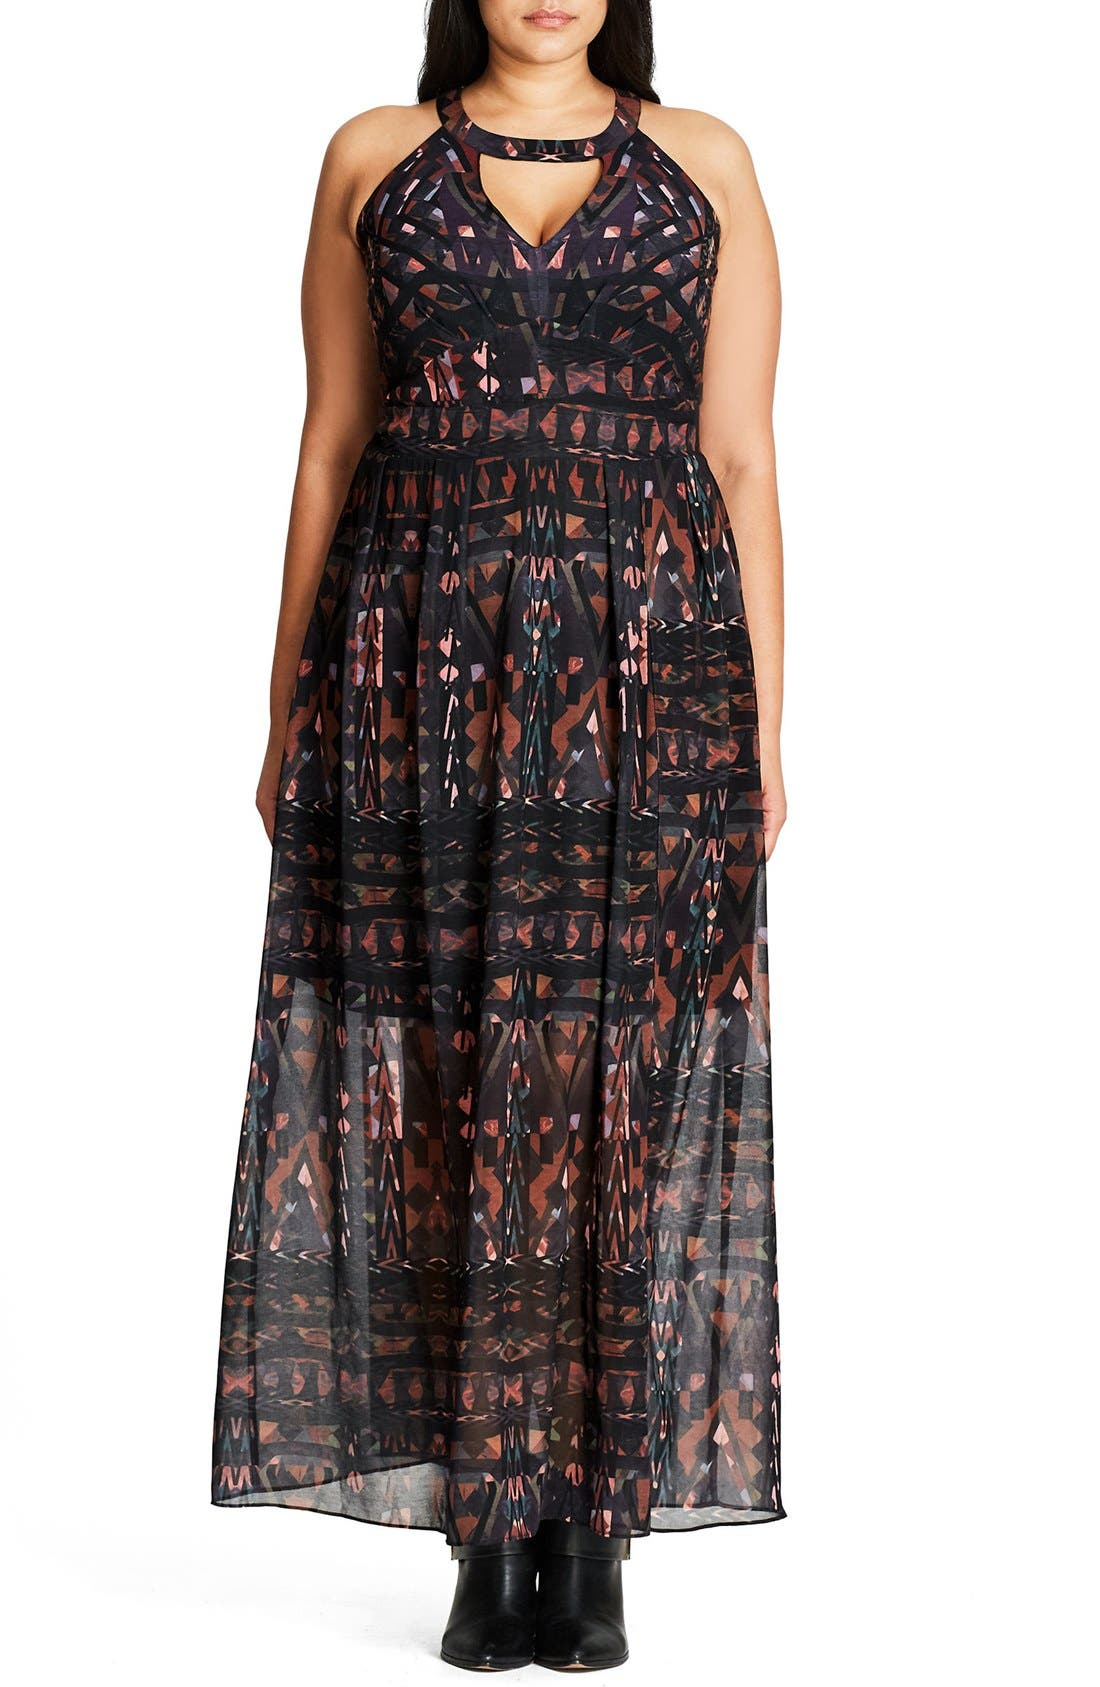 Alternate Image 1 Selected - City Chic So Abstract Cutout Bodice Maxi Dress (Plus Size)